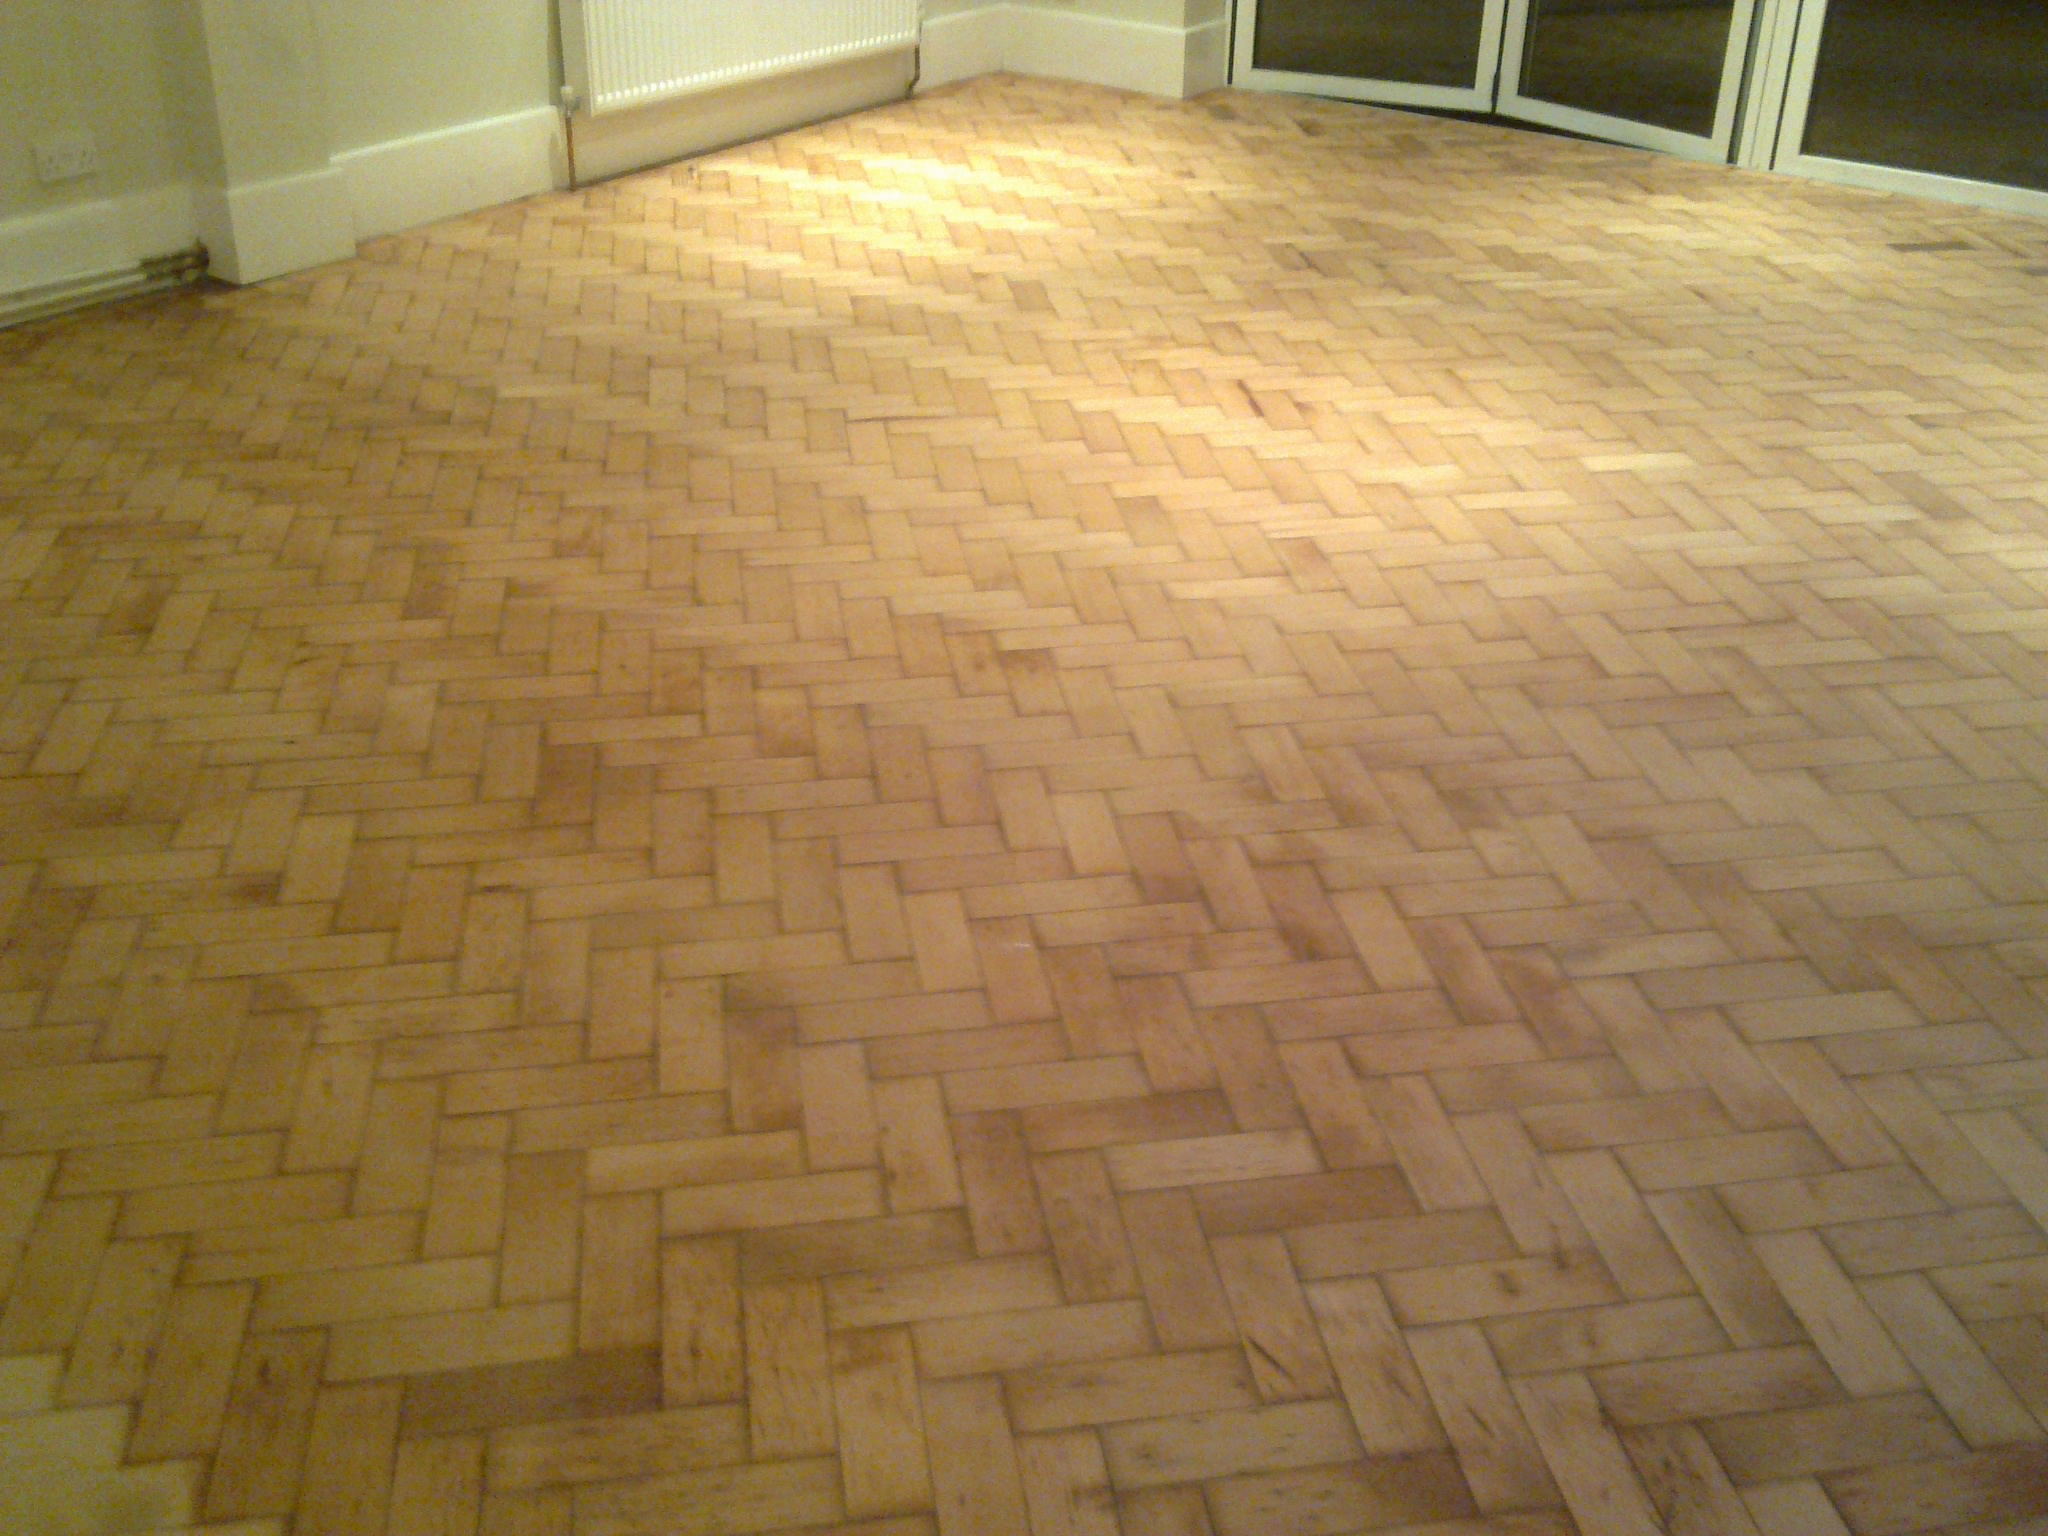 Pitch pine parquet flooring